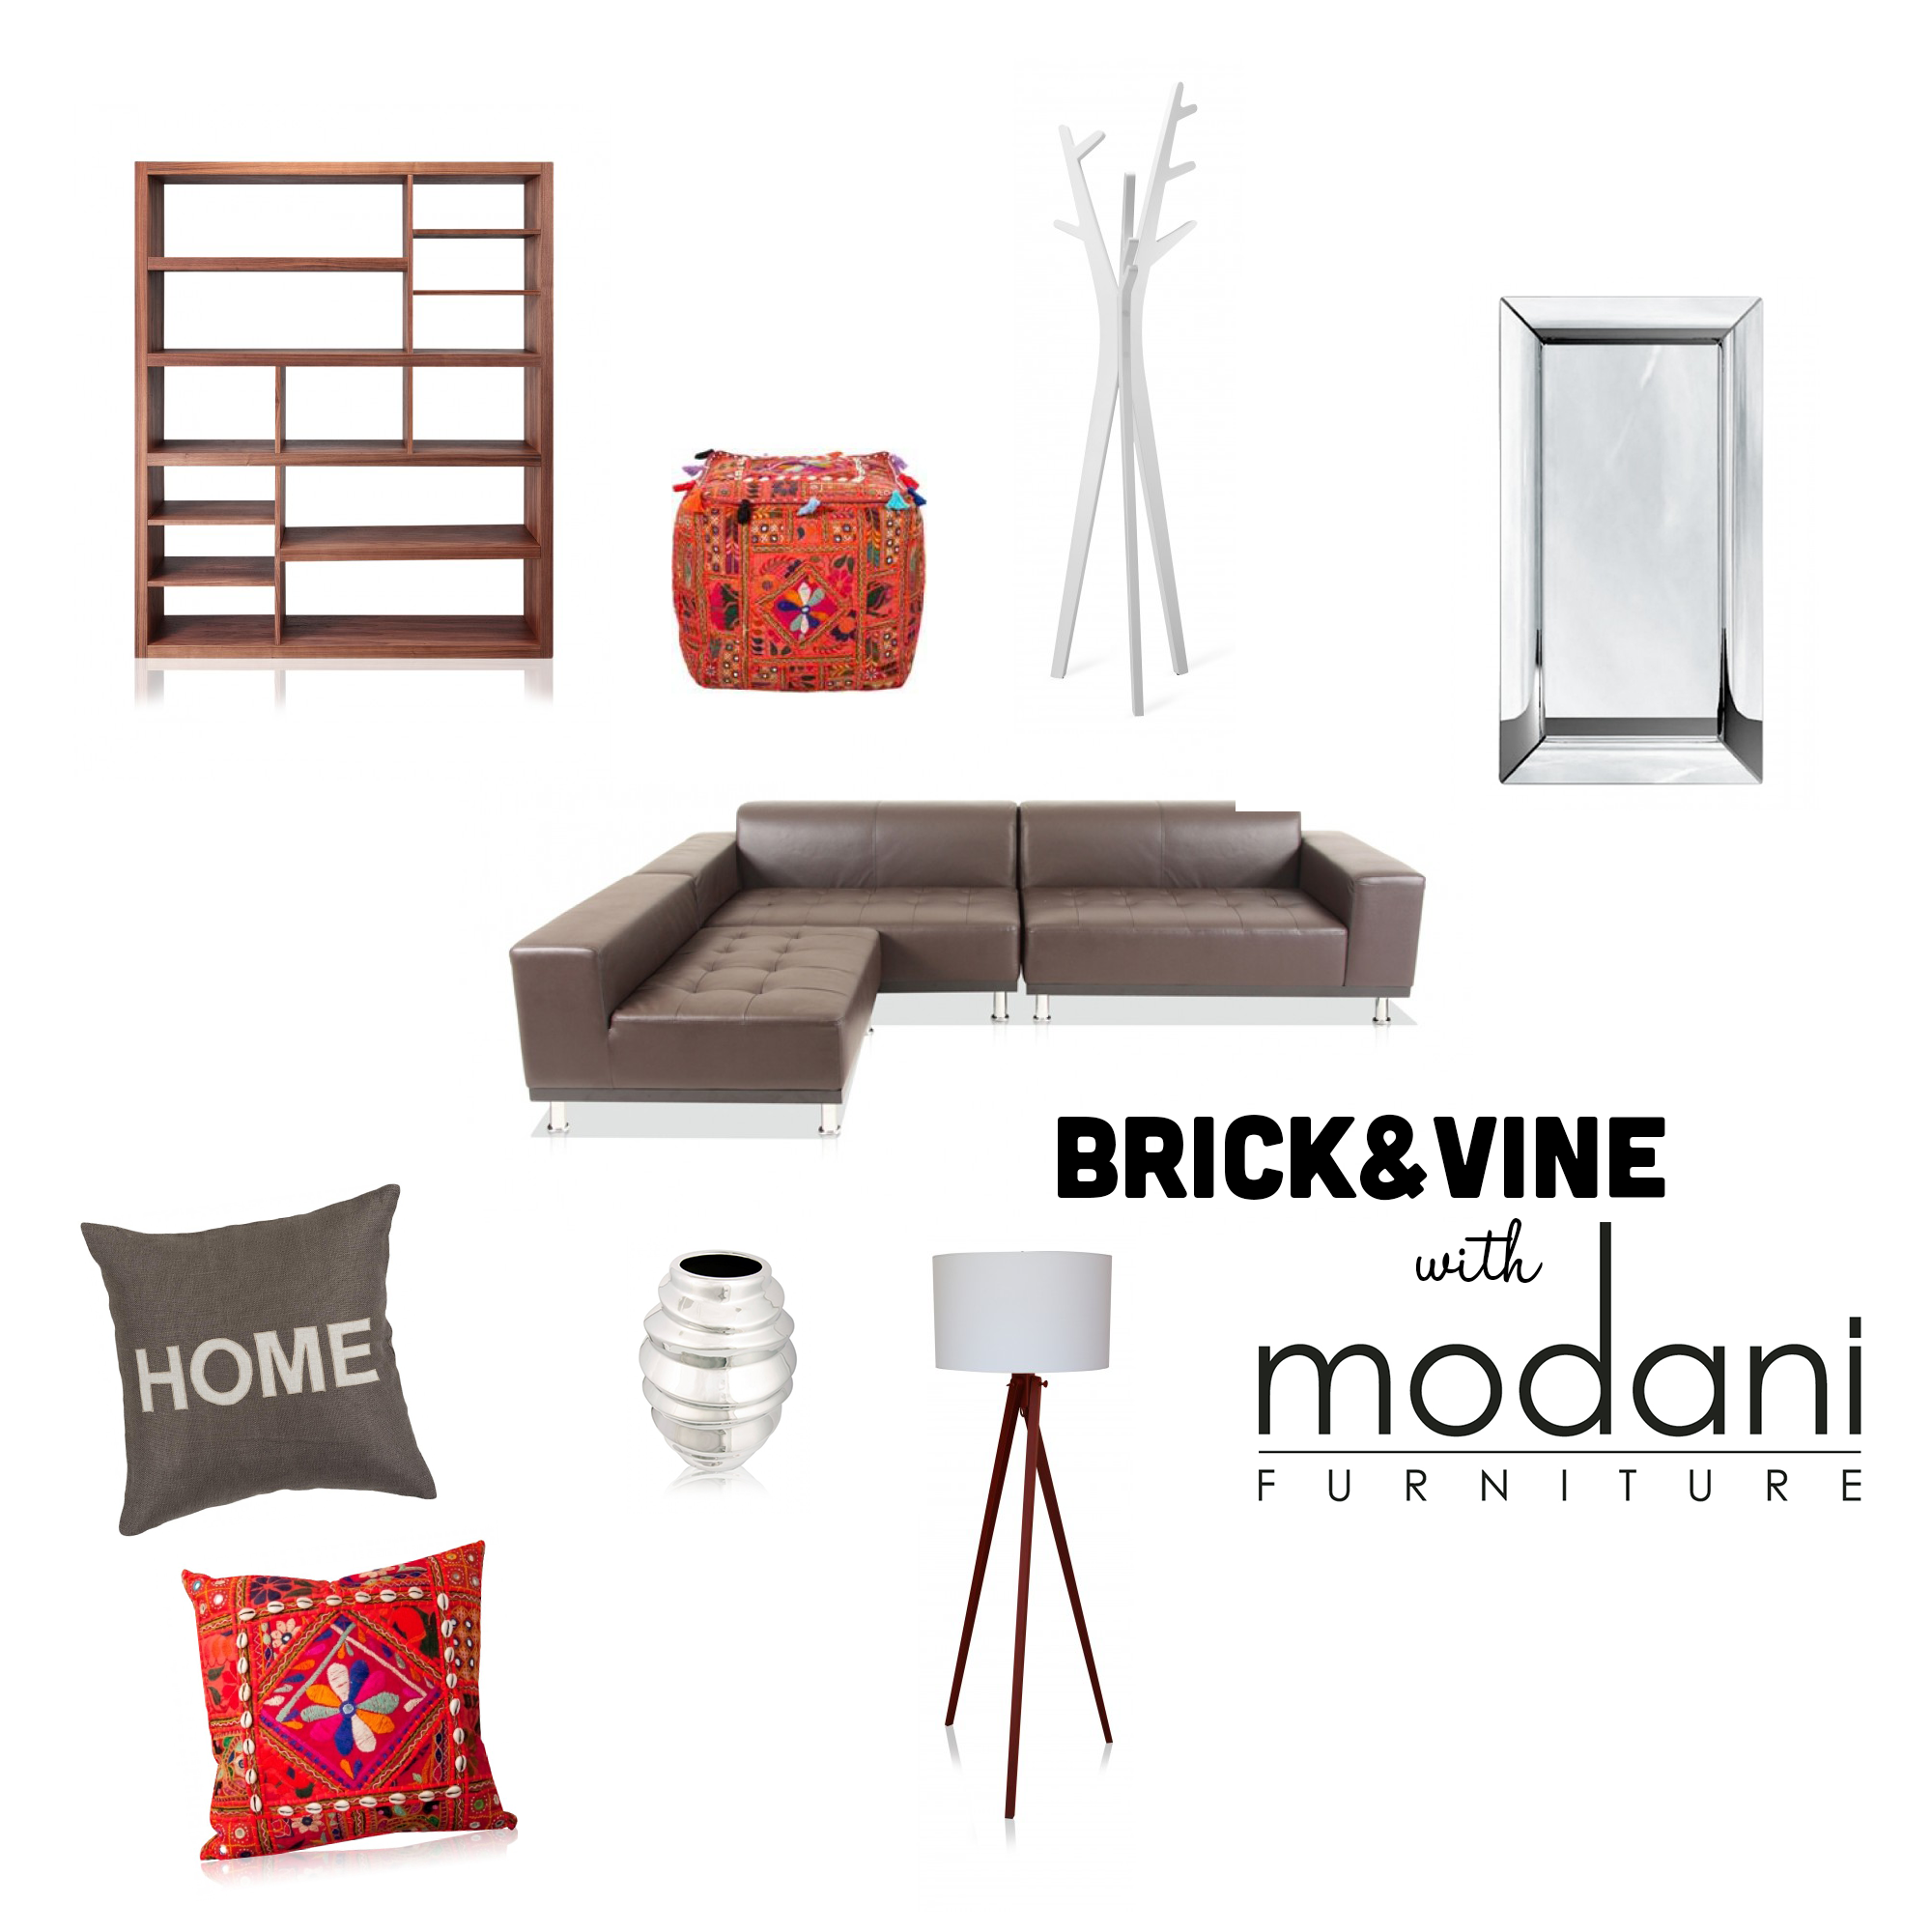 Modani and Brick&Vine